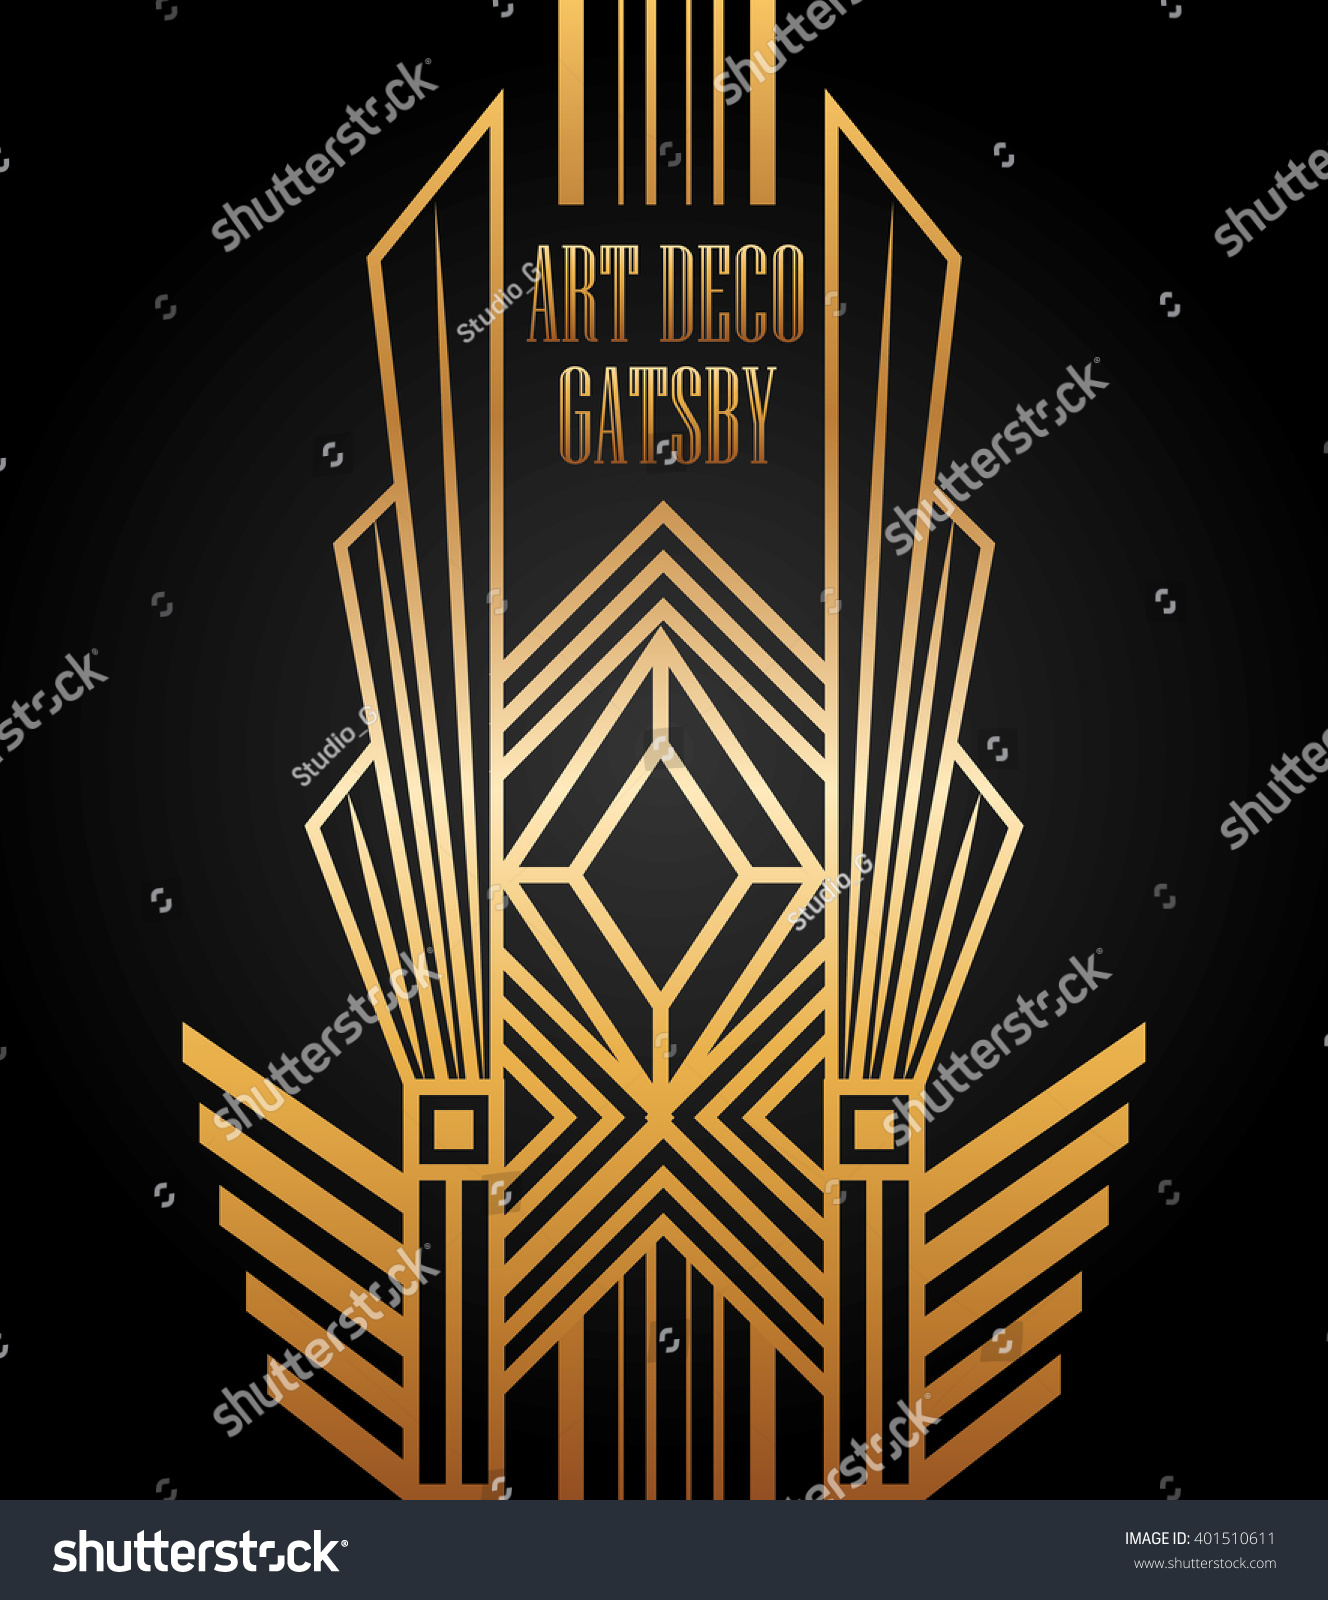 Art deco element gatsby design stock vector illustration for Deco 5 elements